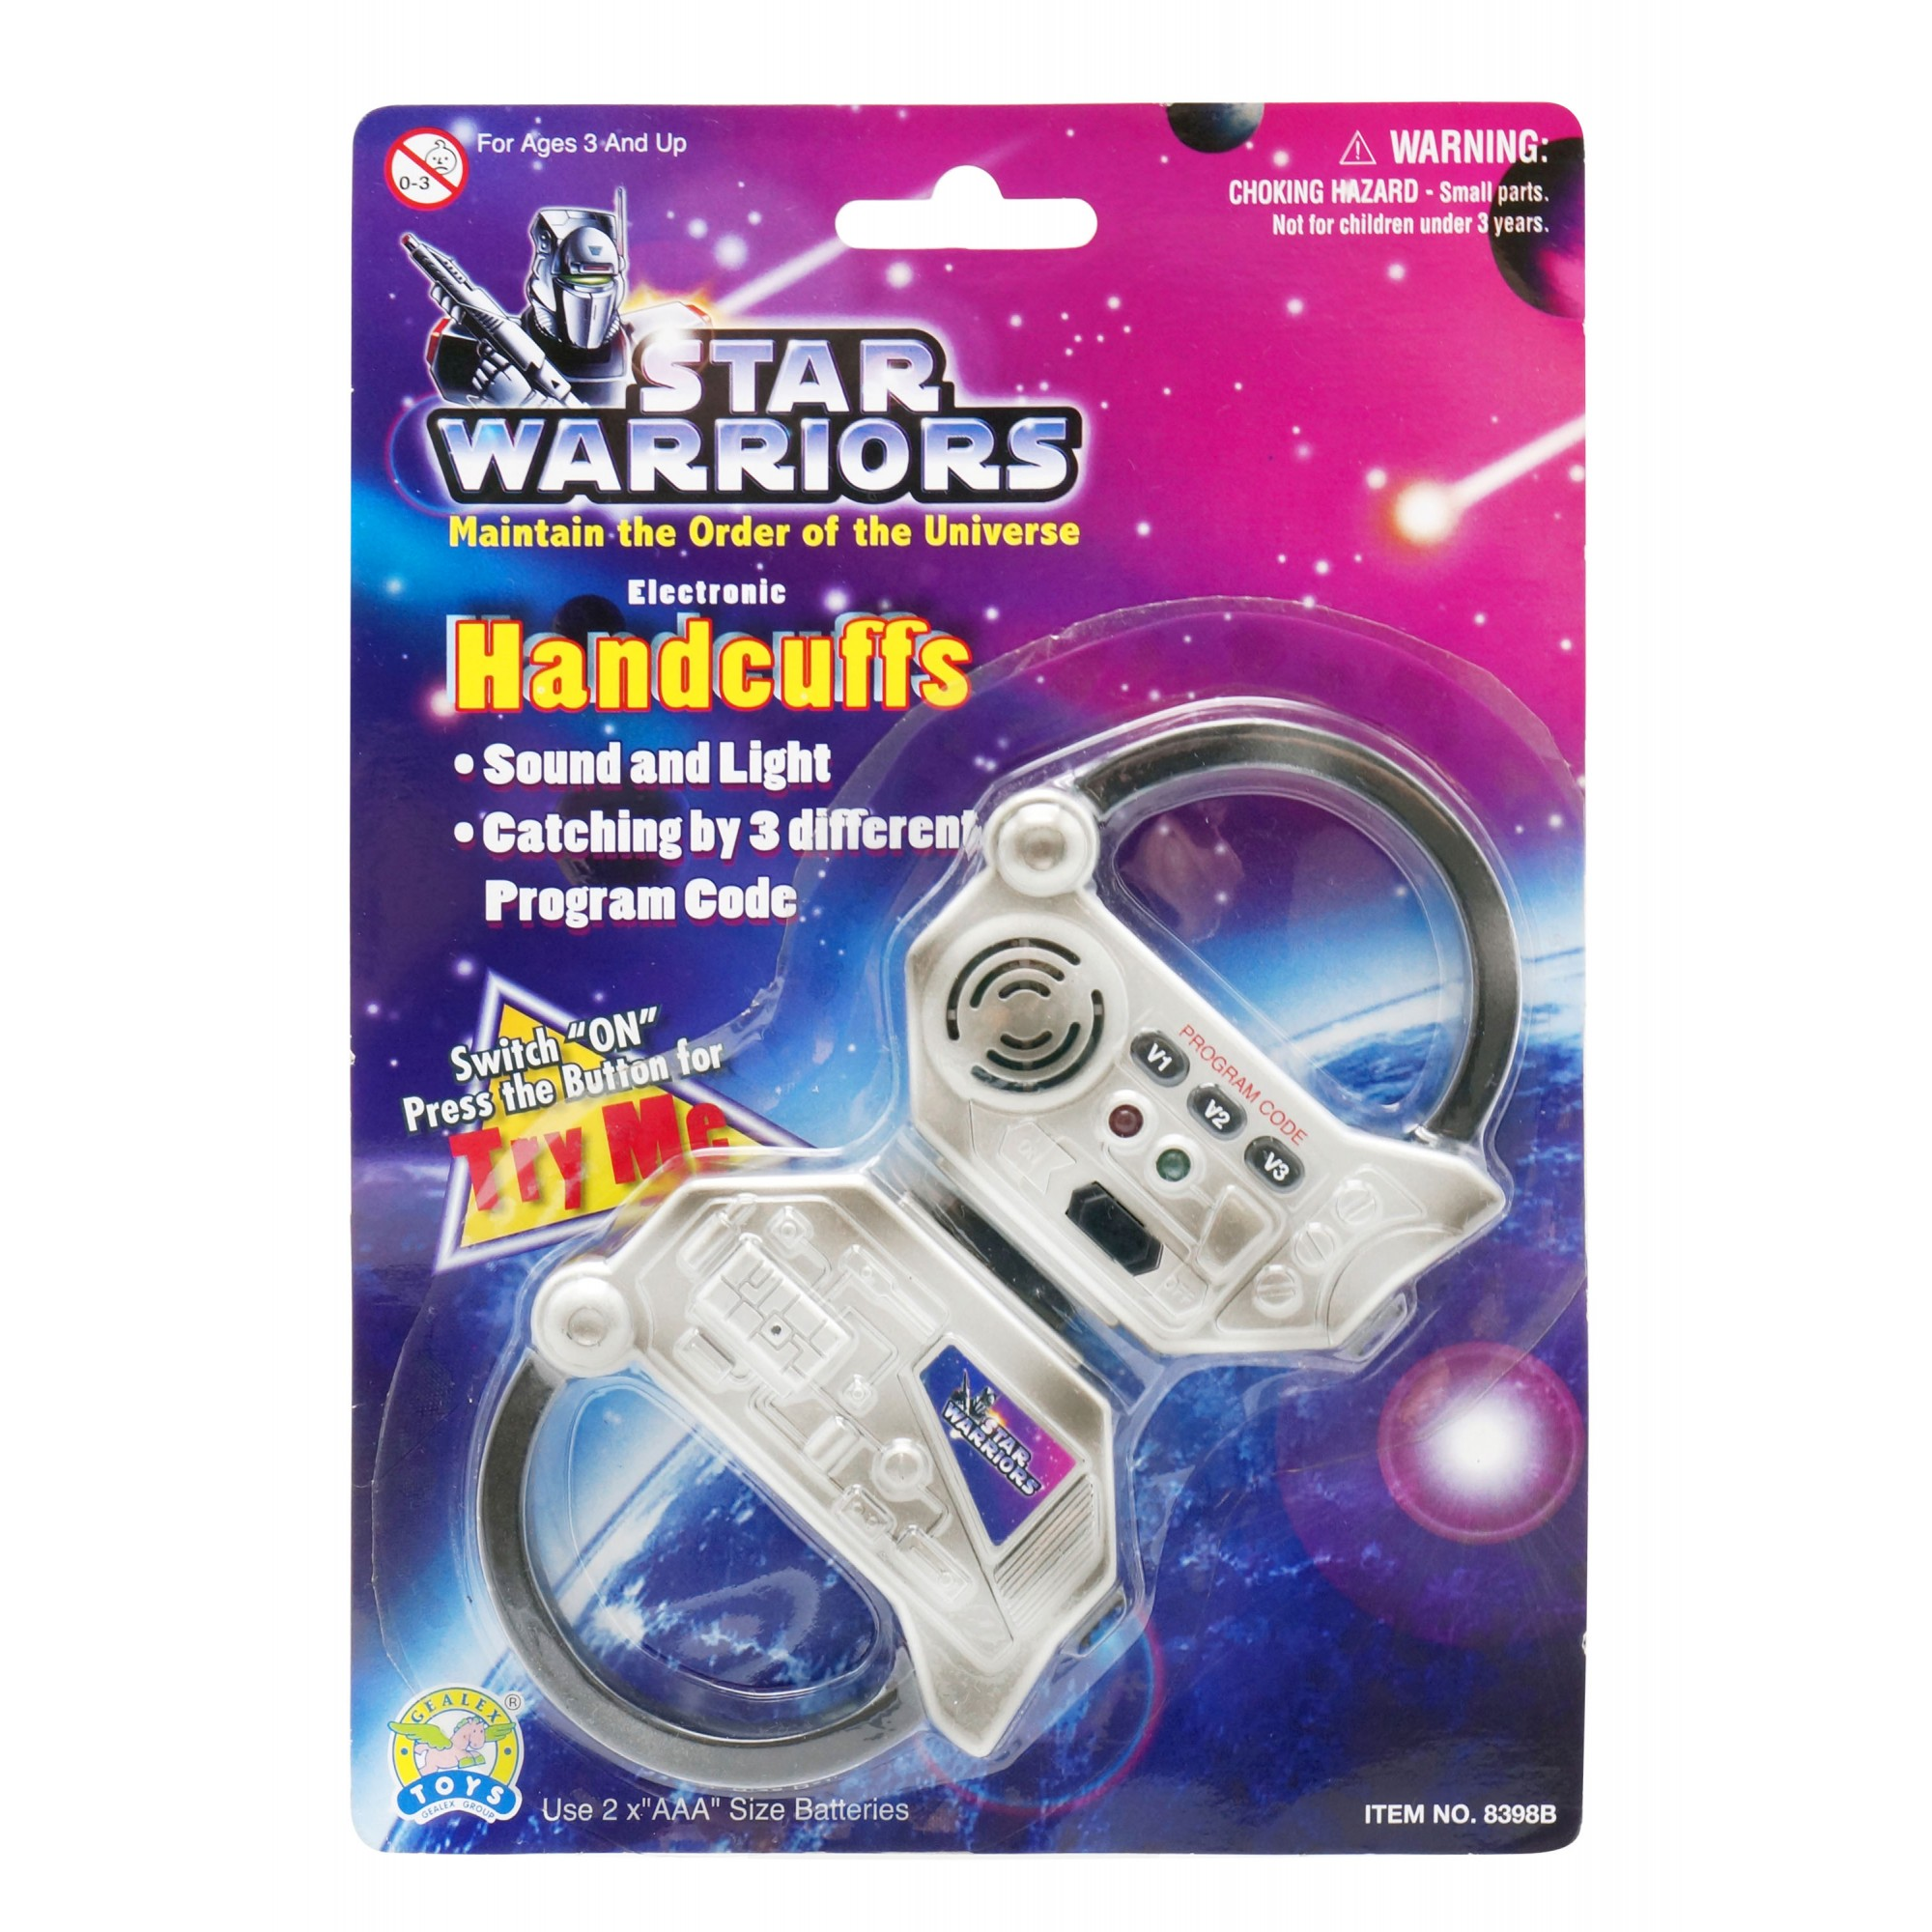 Star Warriors Hand-Cuff